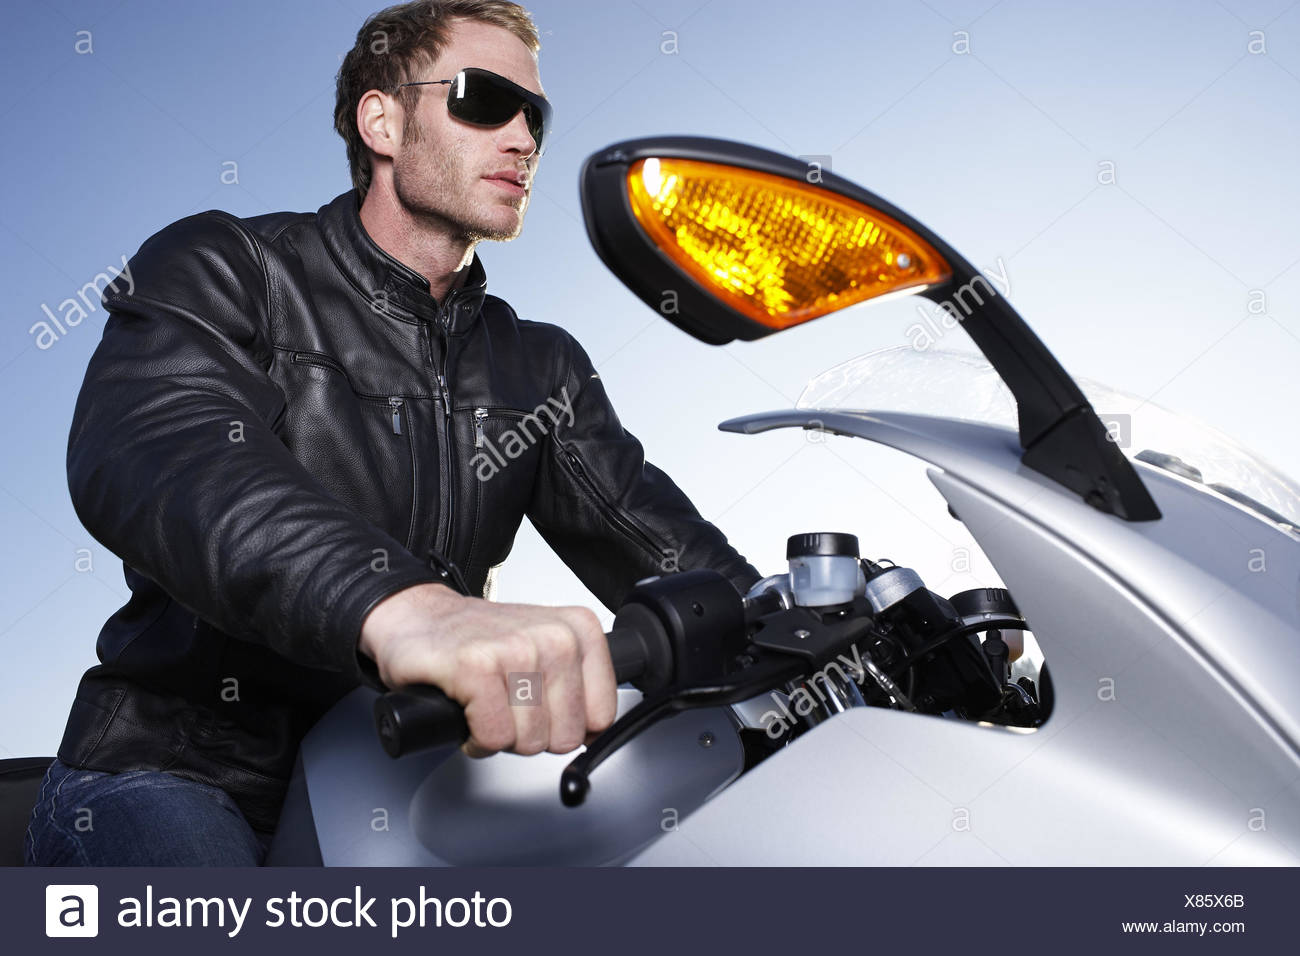 Low angle view of man riding motorcycle - Stock Image